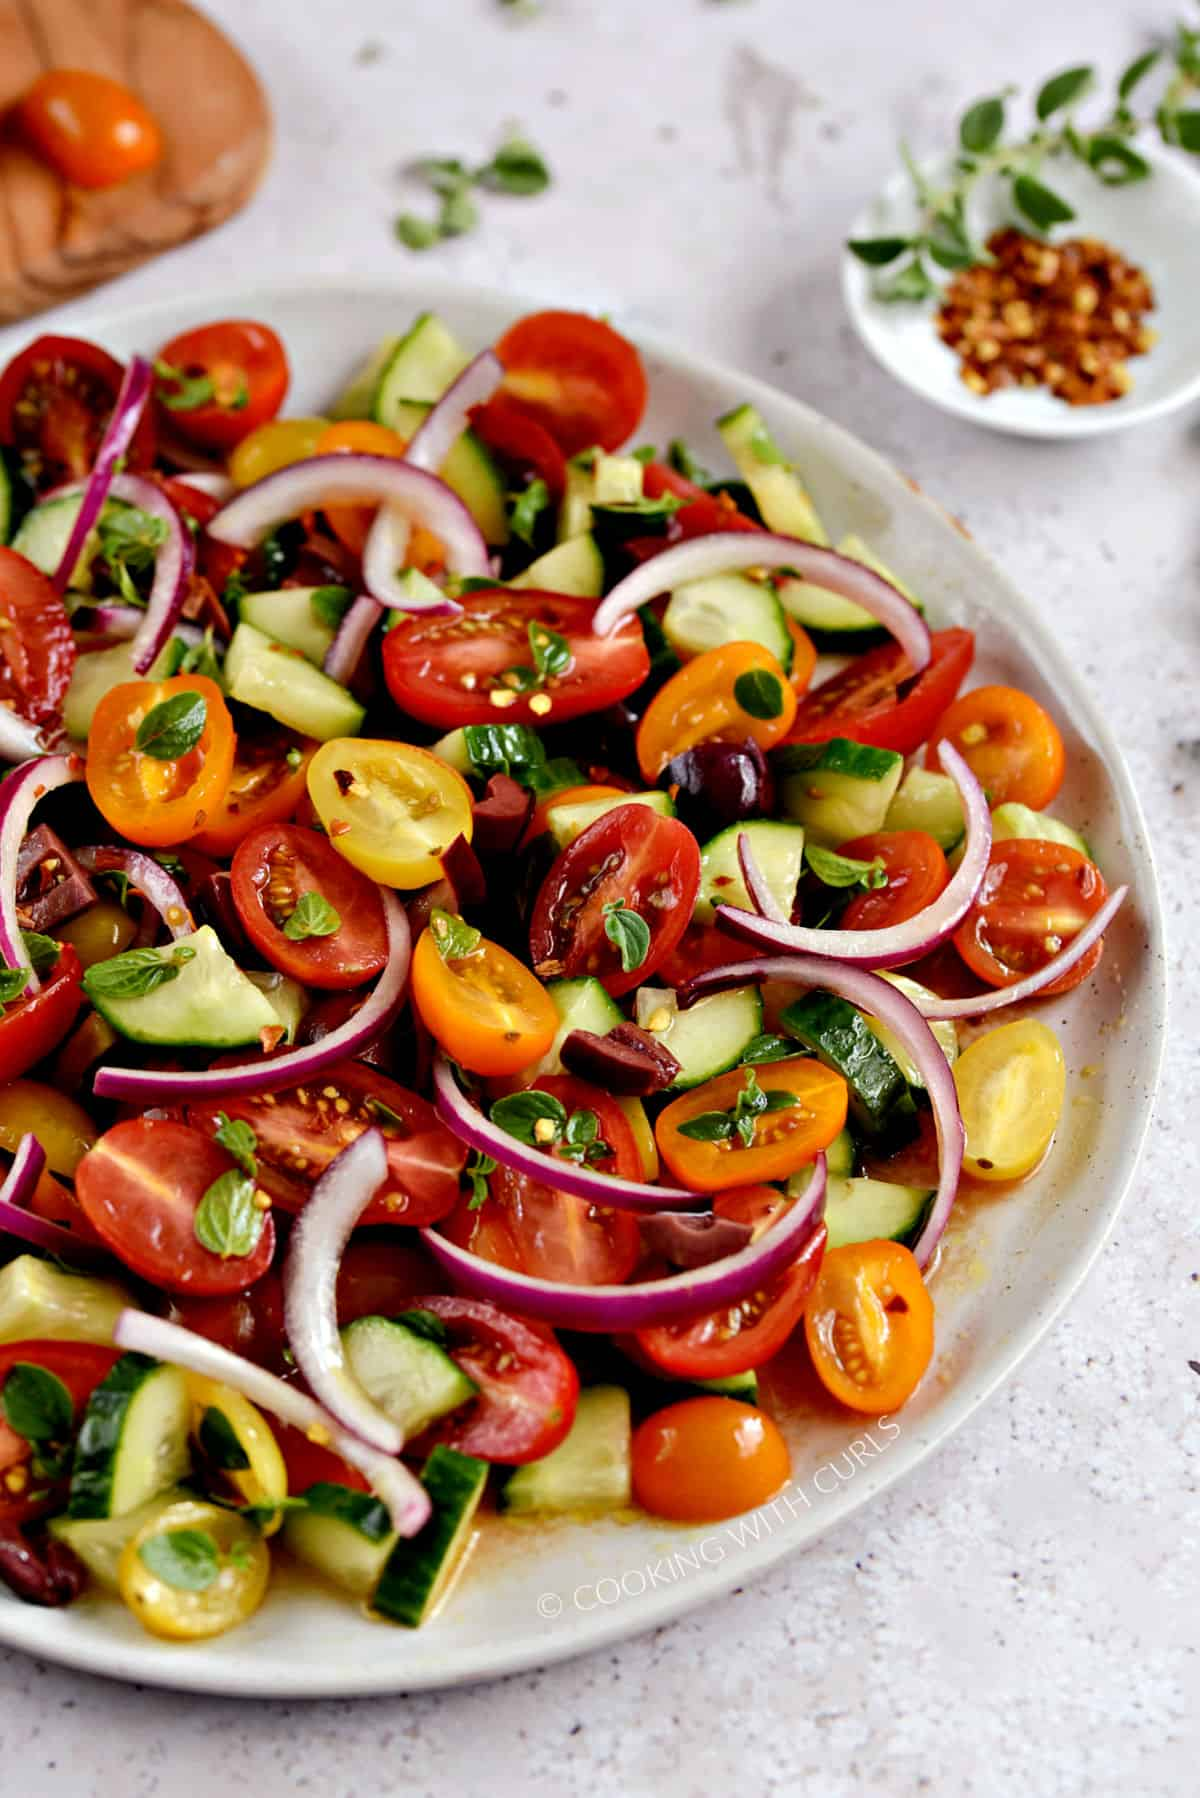 A close-up view of a large plate with sliced cherry tomatoes, cucumber, kalamata olives, and red onion with fresh oregano leaves and crushed red pepper.